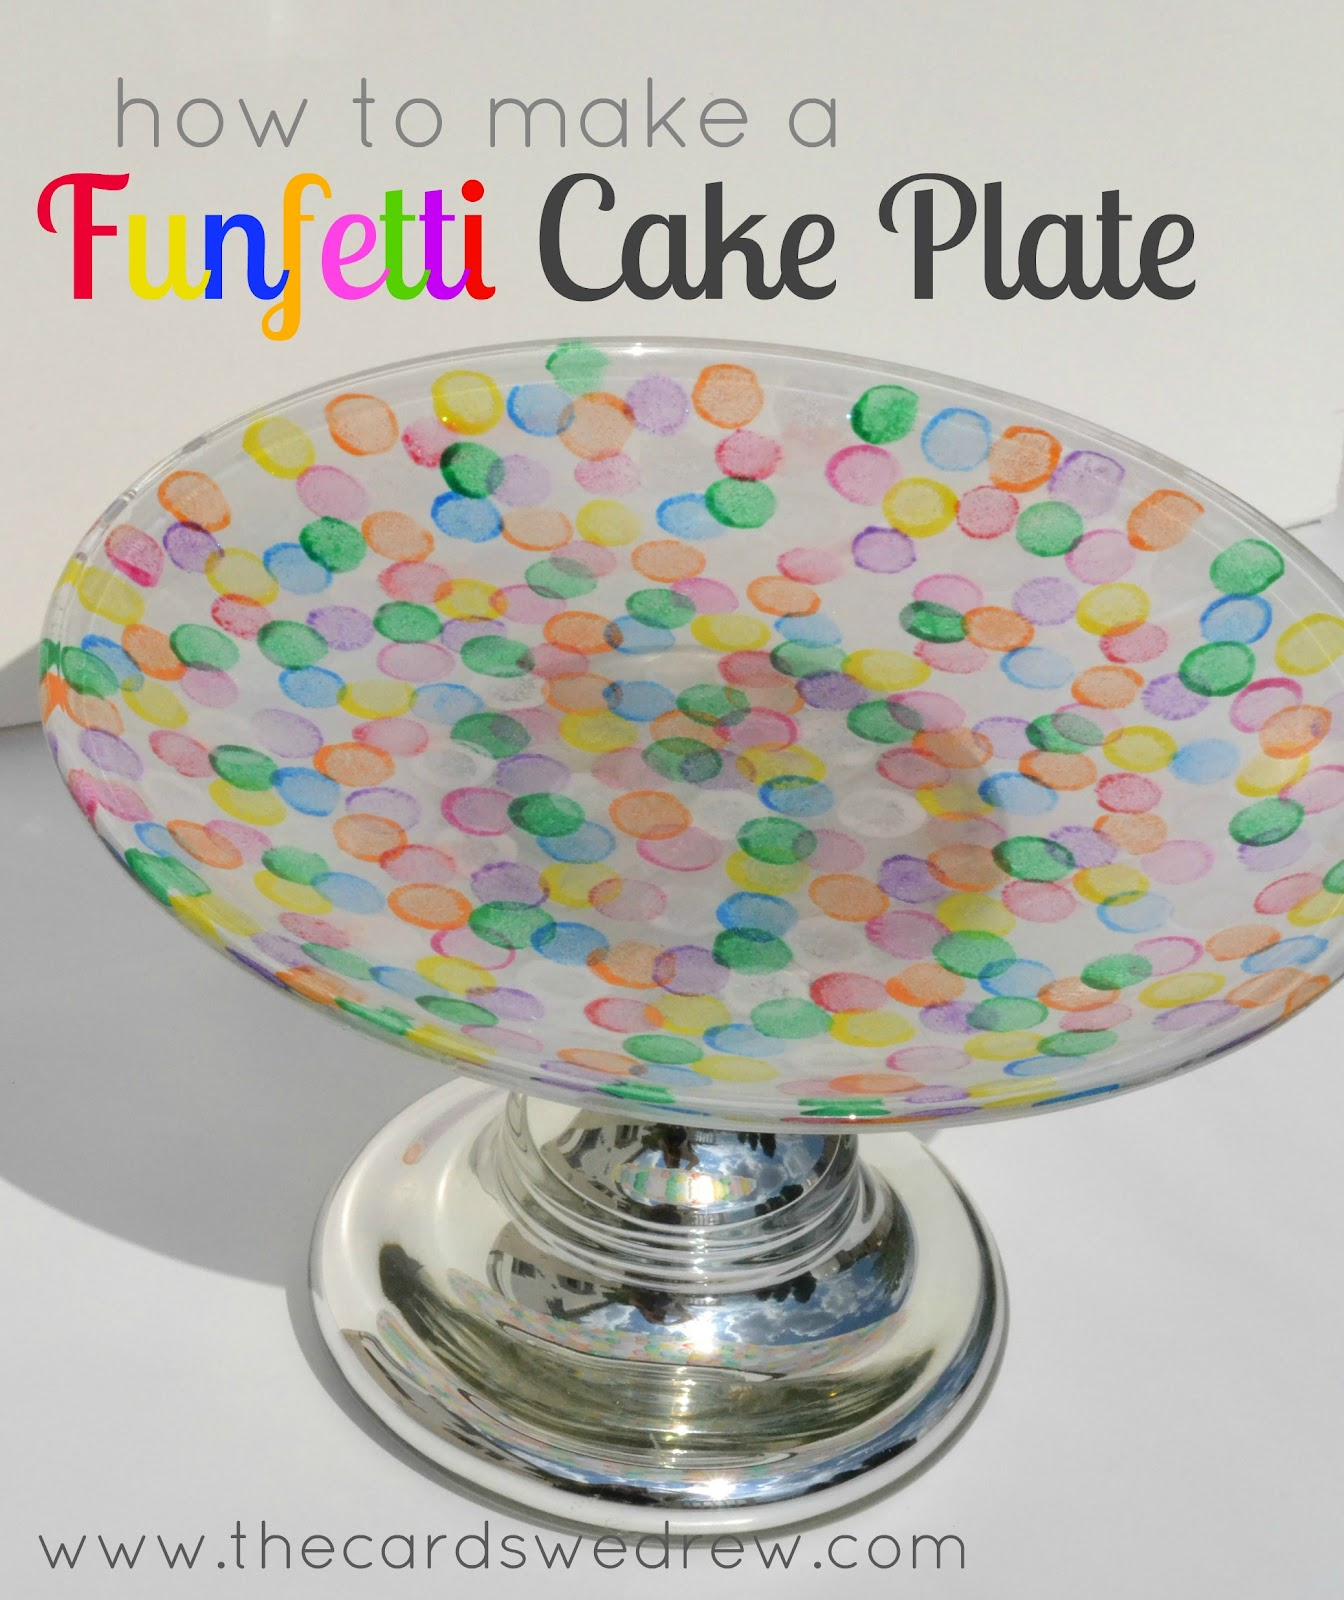 sc 1 st  The Cards We Drew & Funfetti Cake Plate - The Cards We Drew